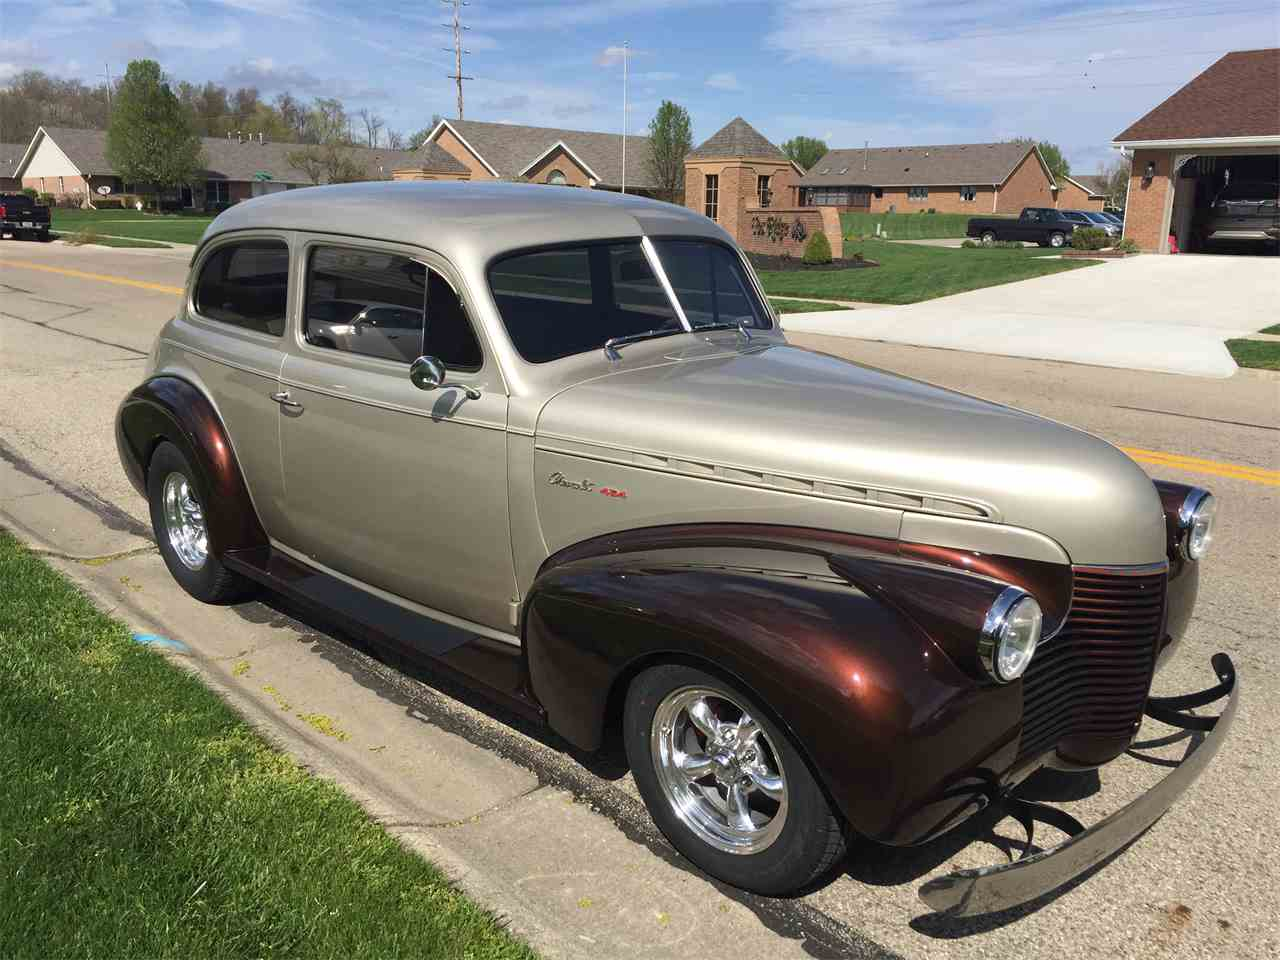 1936 to 1940 Chevrolet for Sale on ClassicCars.com - 160 Available